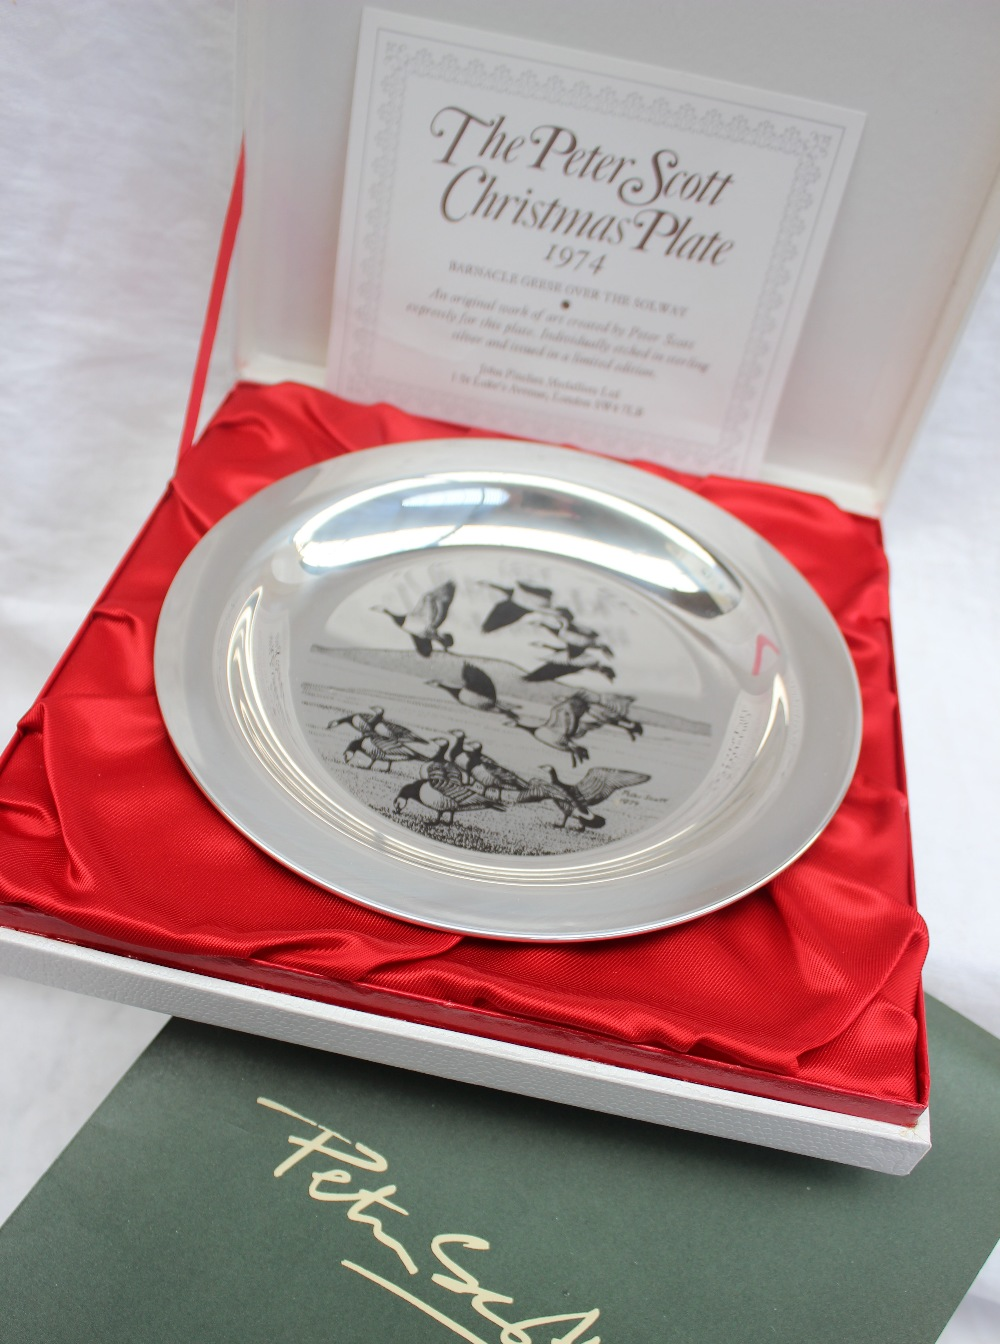 Lot 311 - An Elizabeth II silver Peter Scott Christmas Plate 1974, decorated with Barnacle geese over Solway,